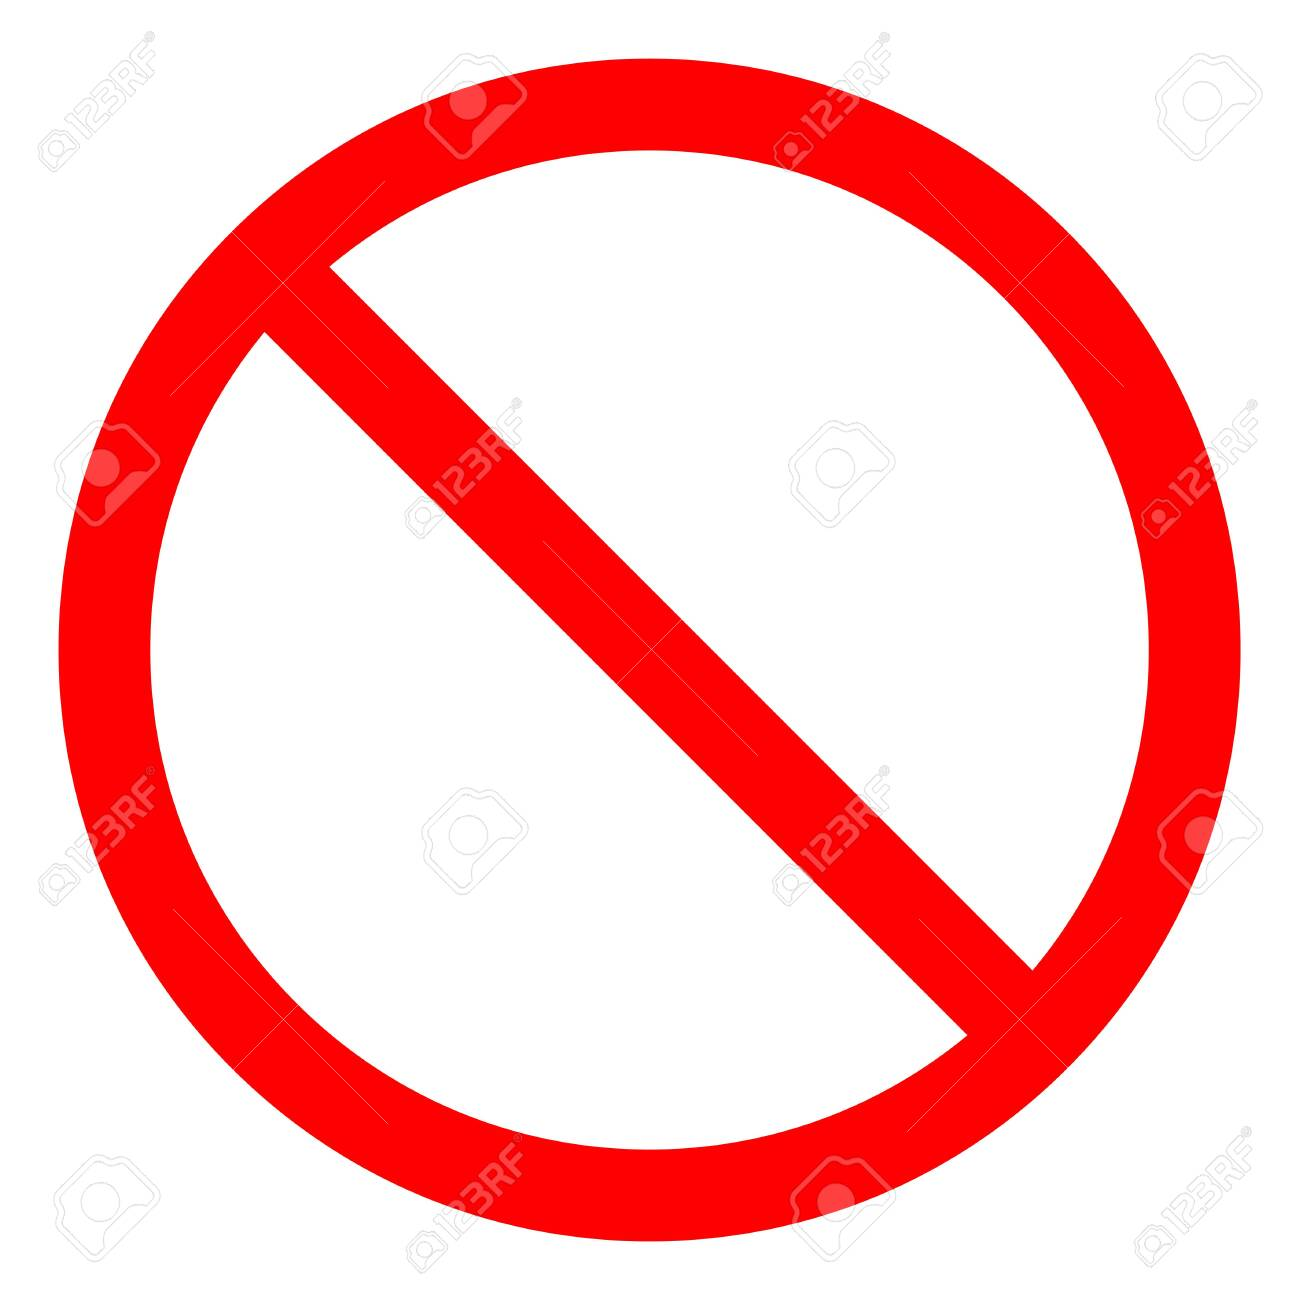 No Sign Empty Red Crossed Out Circle,Not Allowed Sign Isolate On White Background,Vector Illustration EPS.10 - 126635447